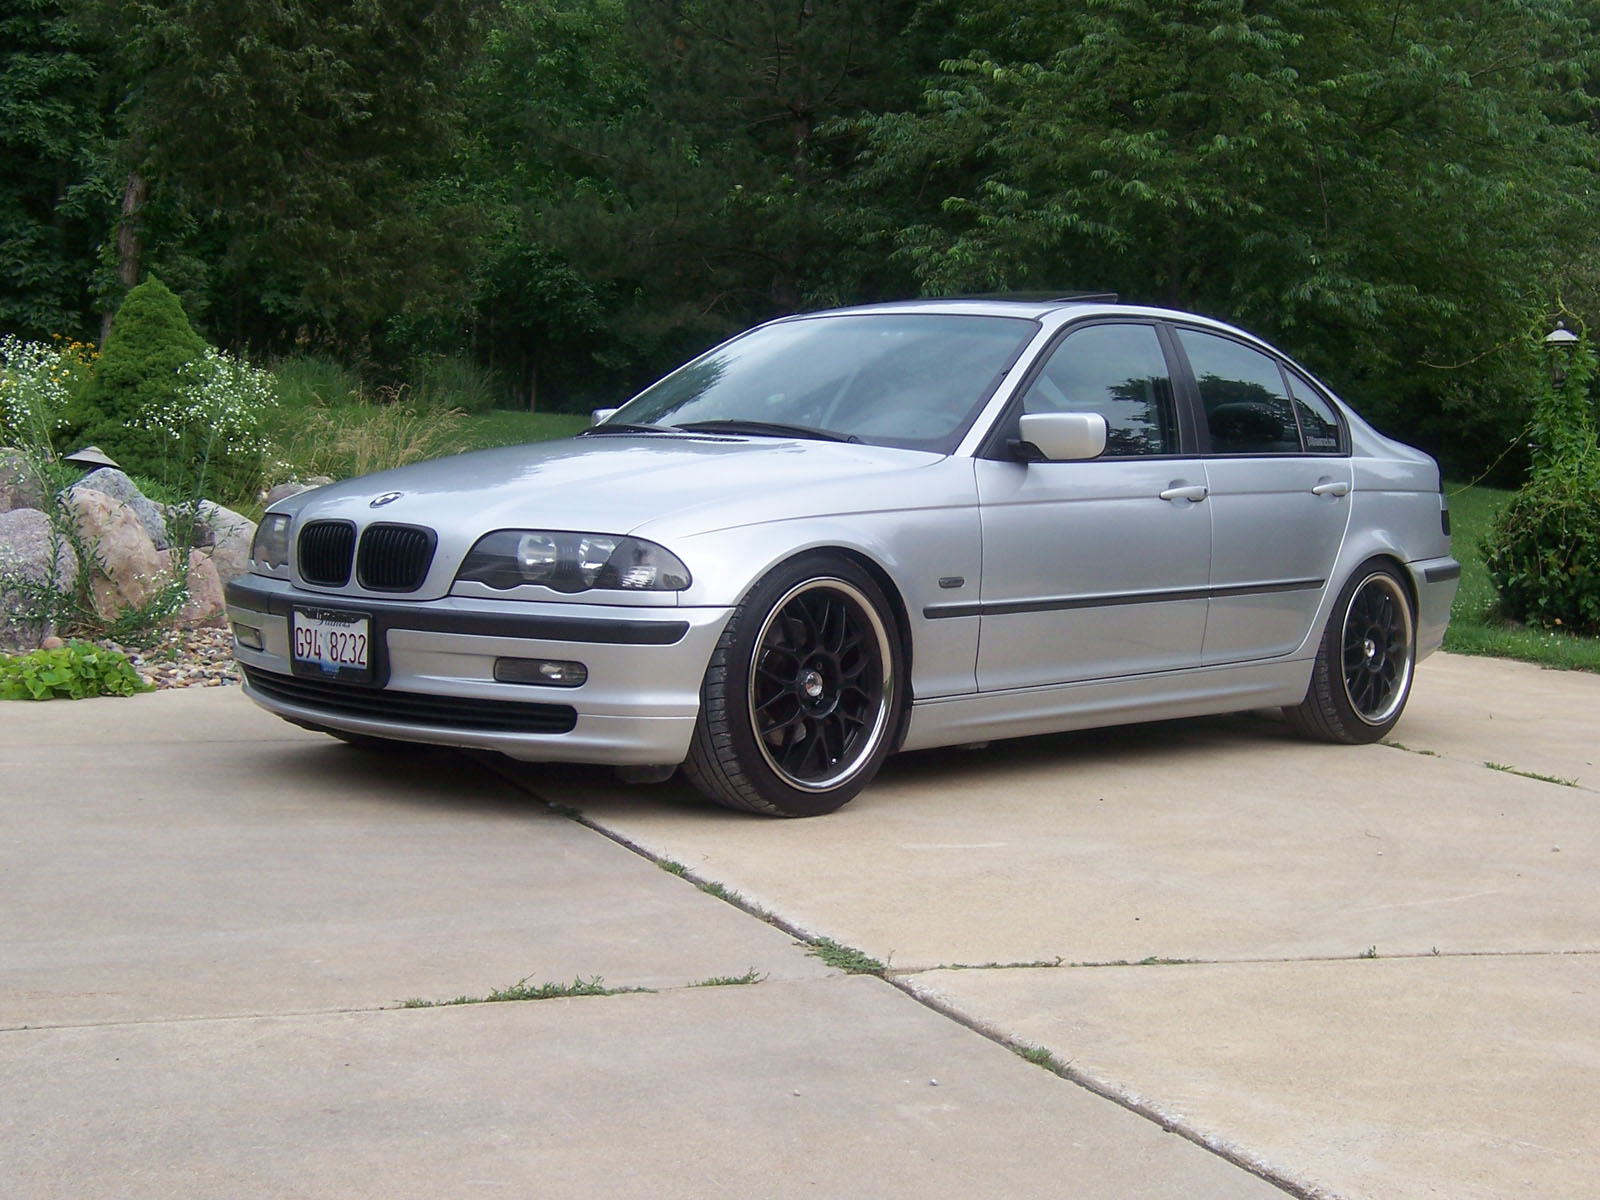 2001 bmw bmw 325i 325 for sale pottstown illinois. Black Bedroom Furniture Sets. Home Design Ideas